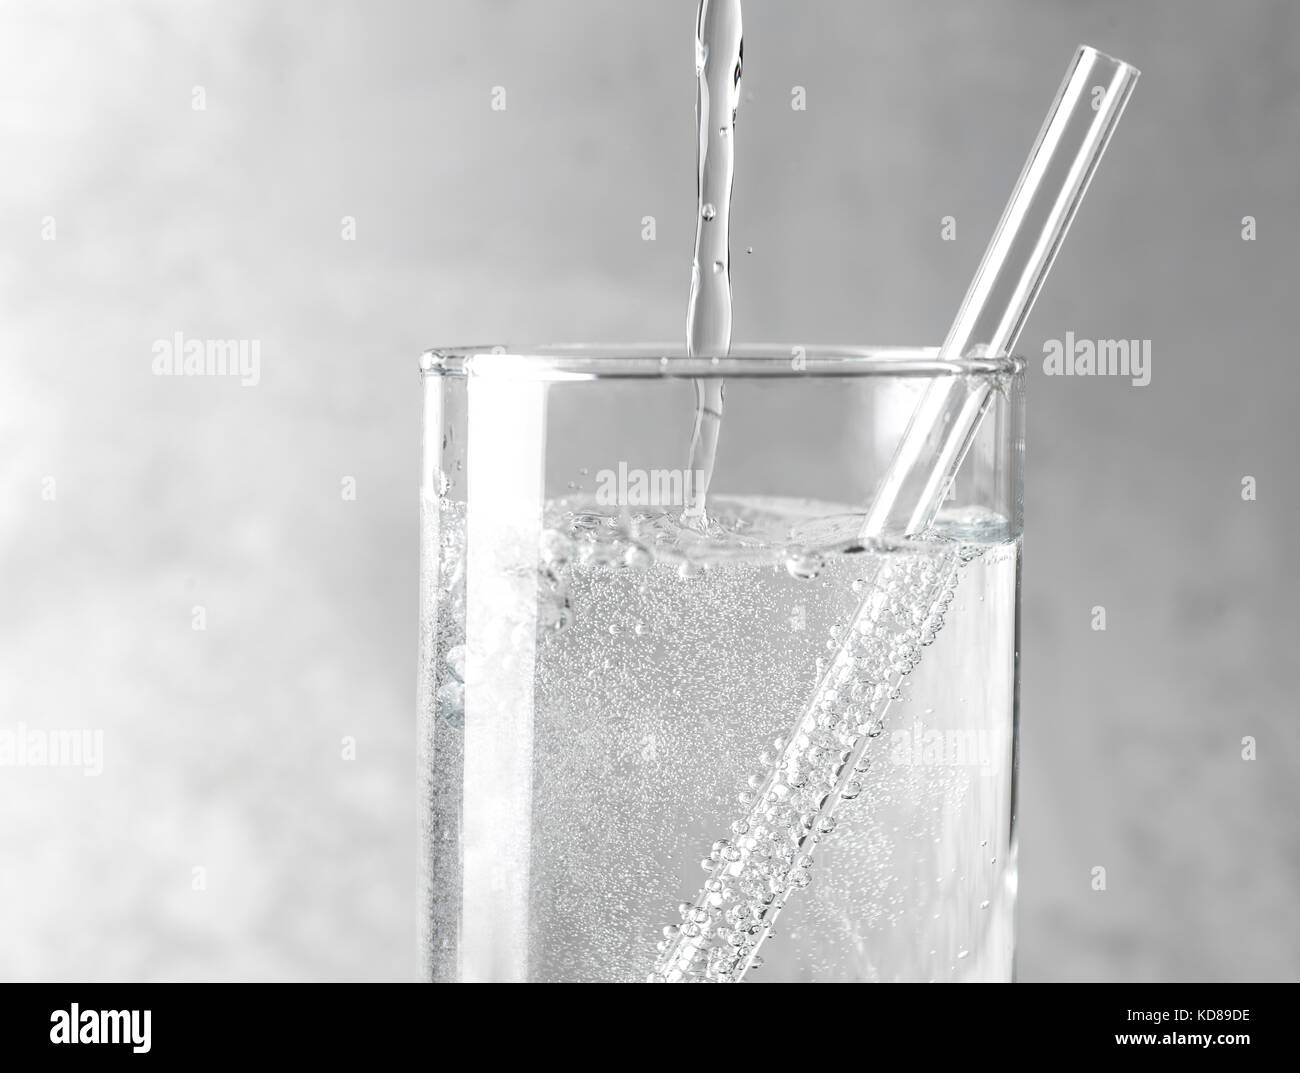 Detail of sparkling water being poured into a clear glass with a clear straw on a gray metal background. - Stock Image